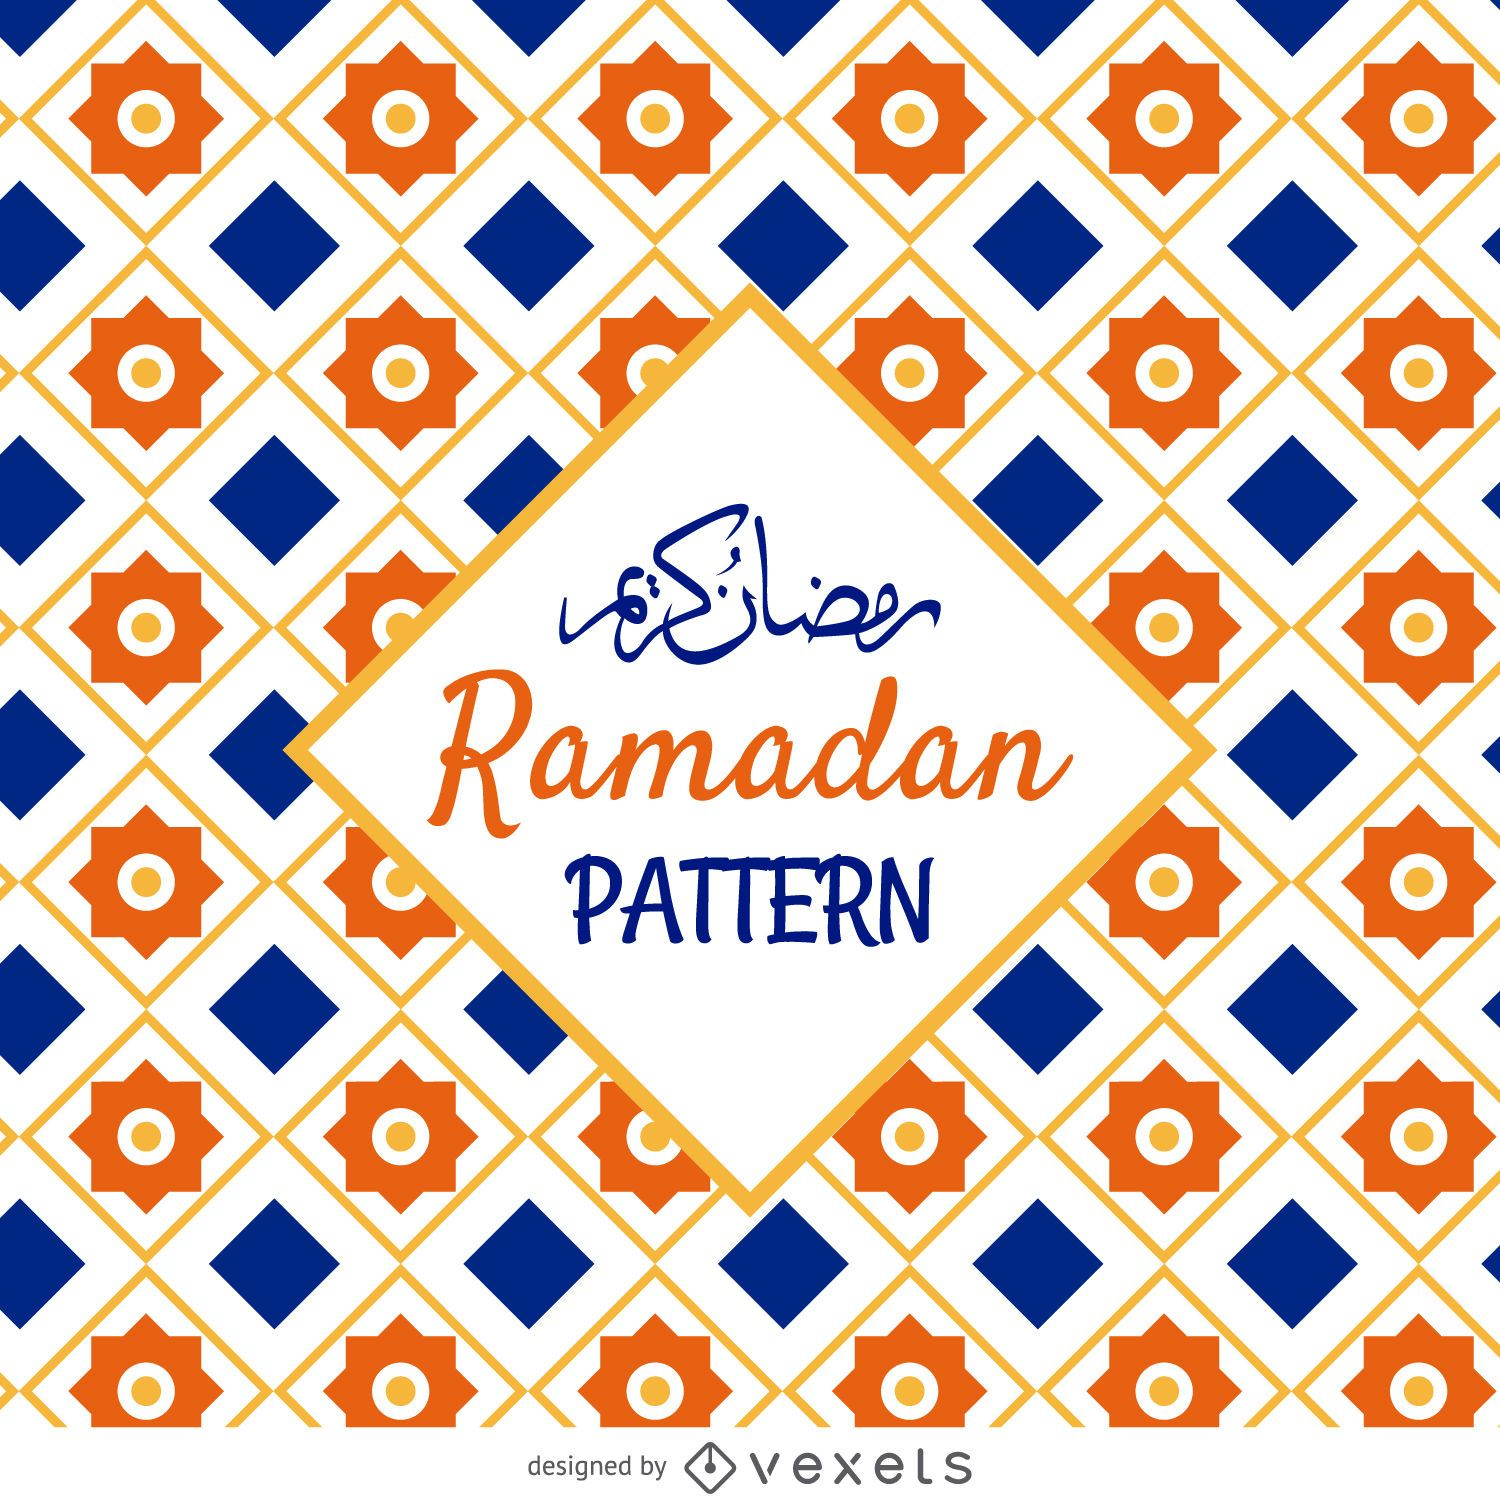 Ramadan Vector  for Ramadan Pattern Png  117dqh